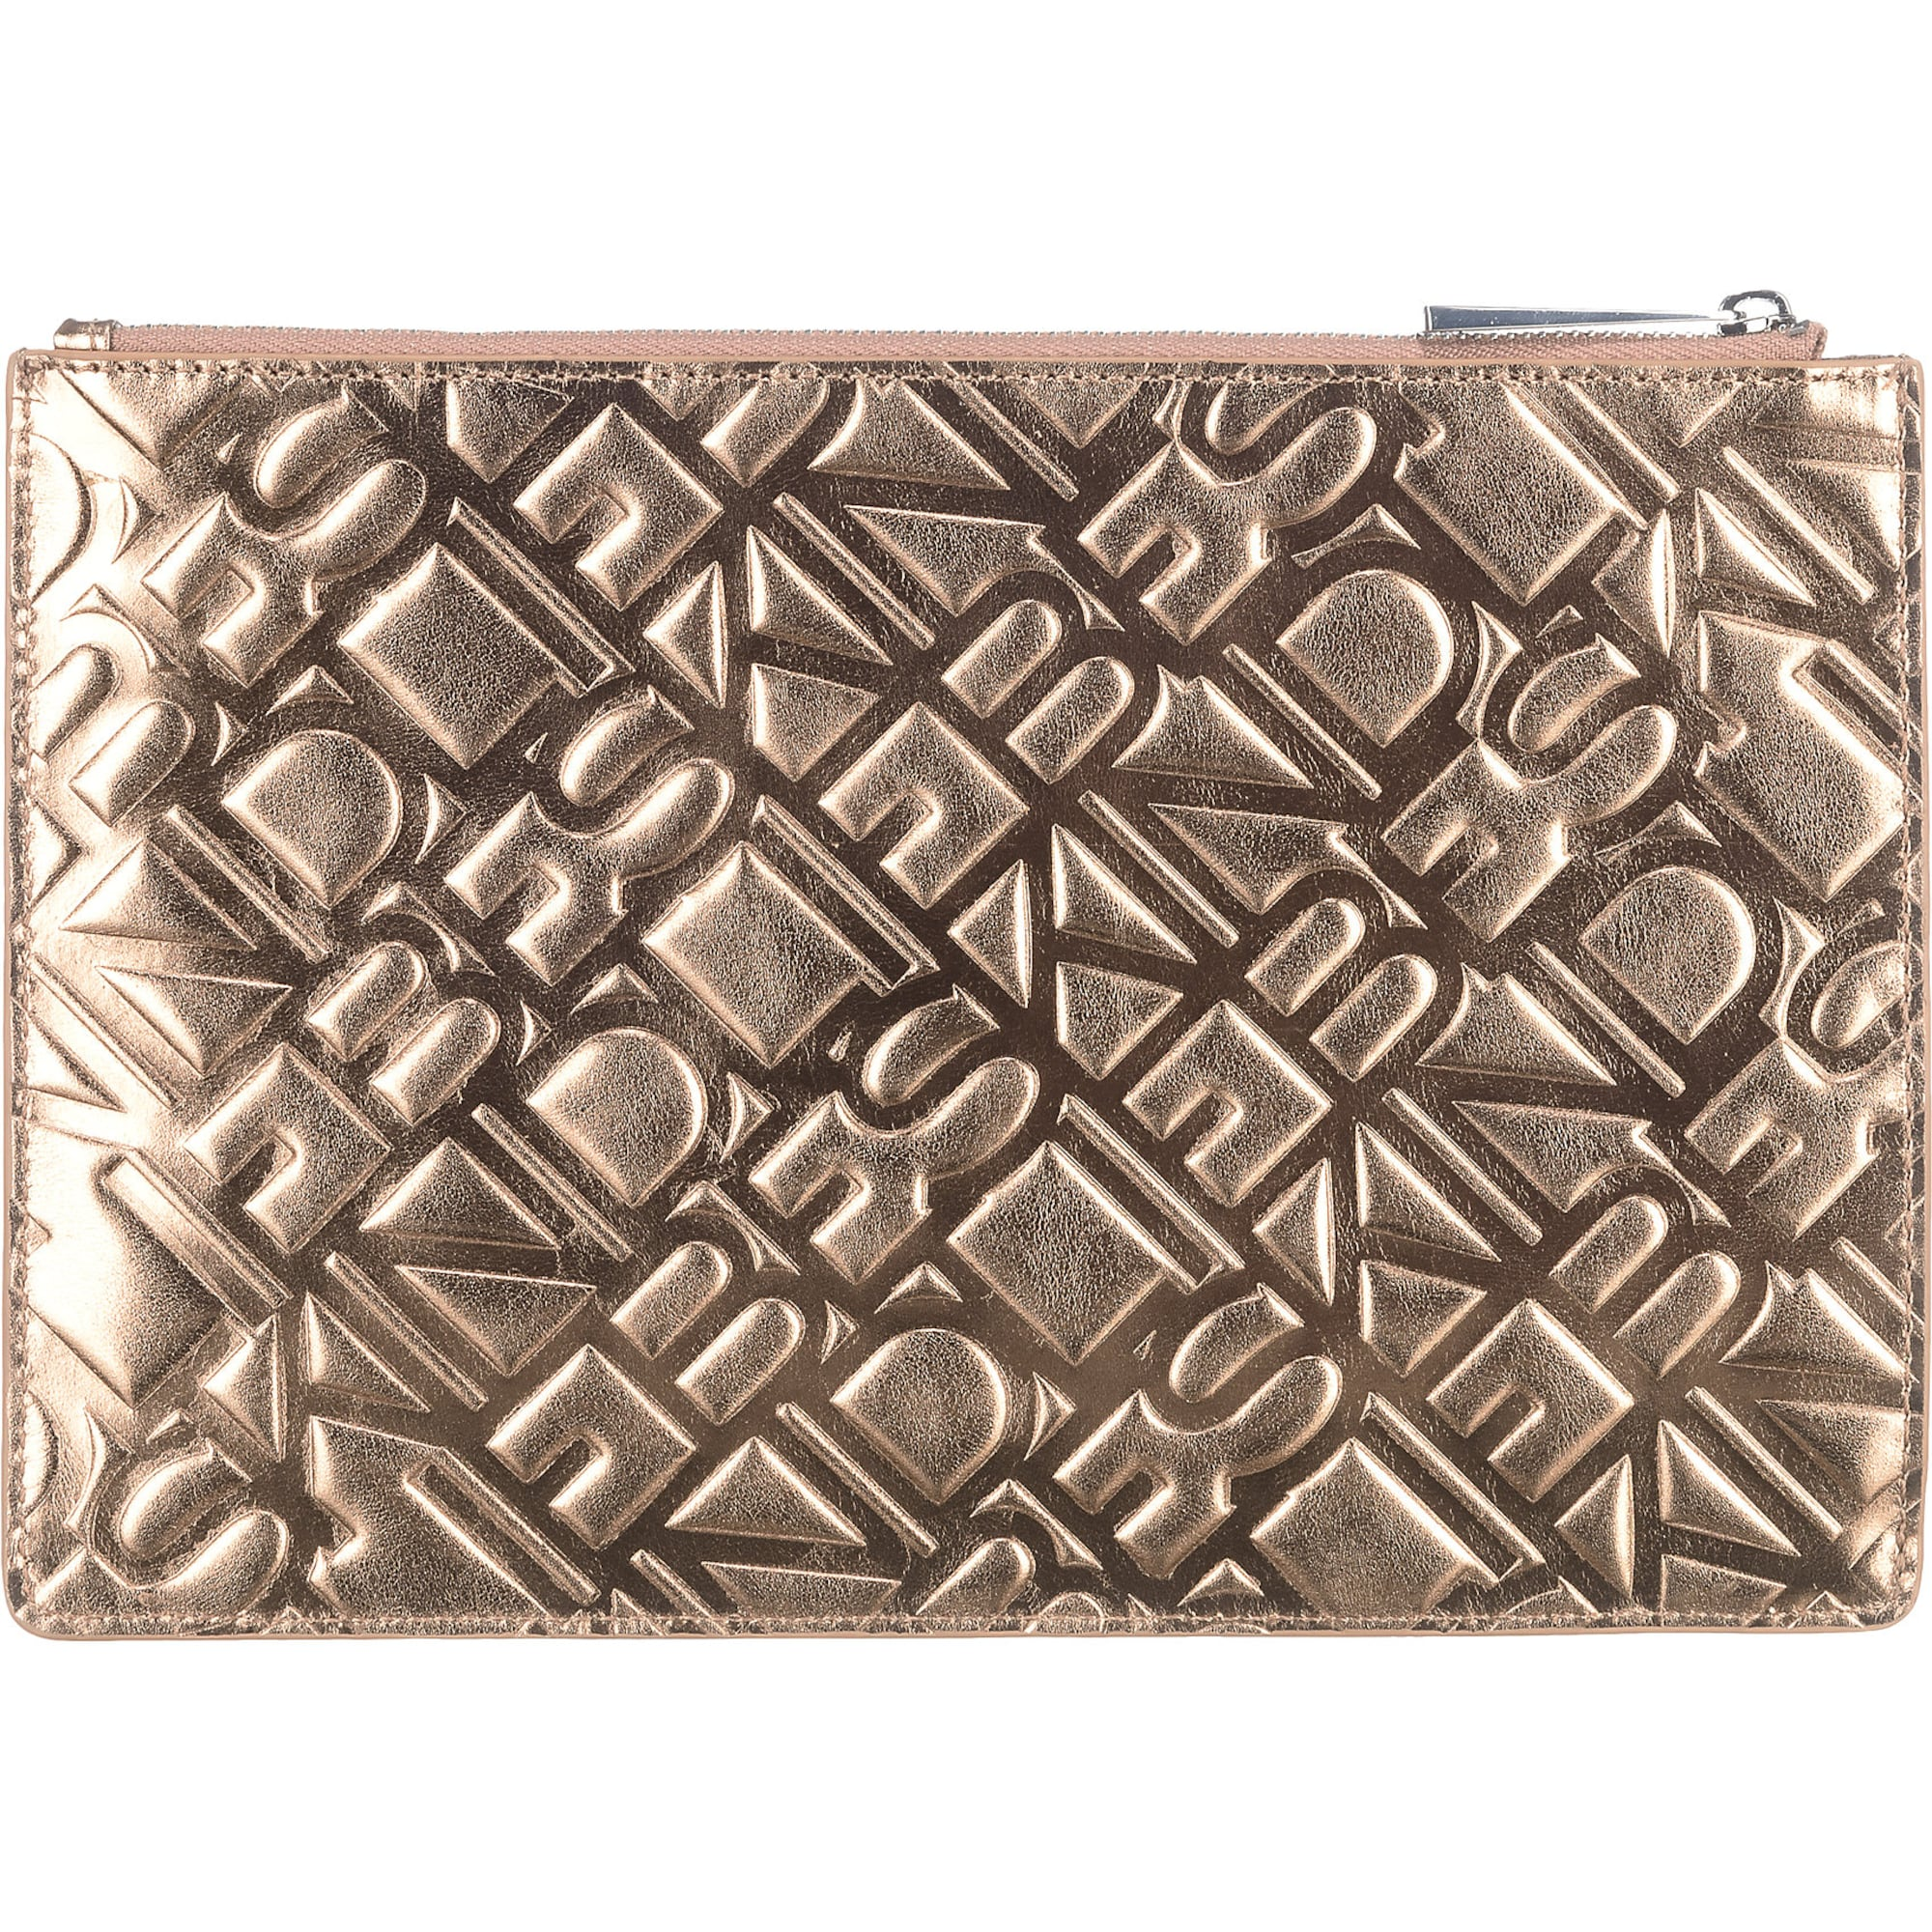 Liebeskind Berlin, Dames Clutch 'MinjaMS8', goud